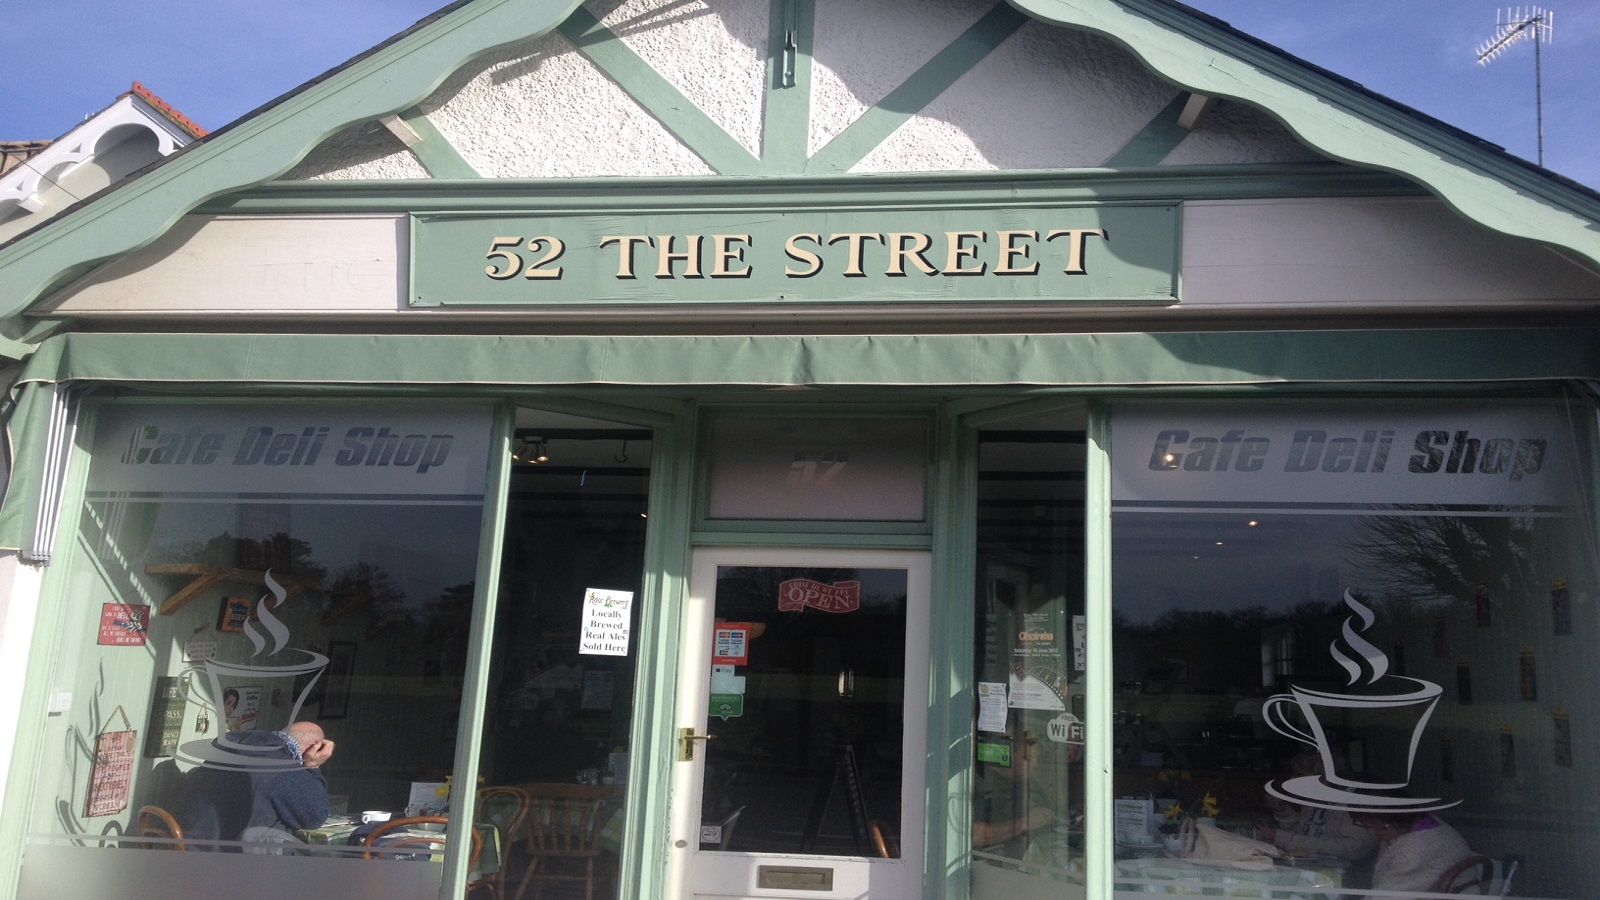 52 The Street Cafe